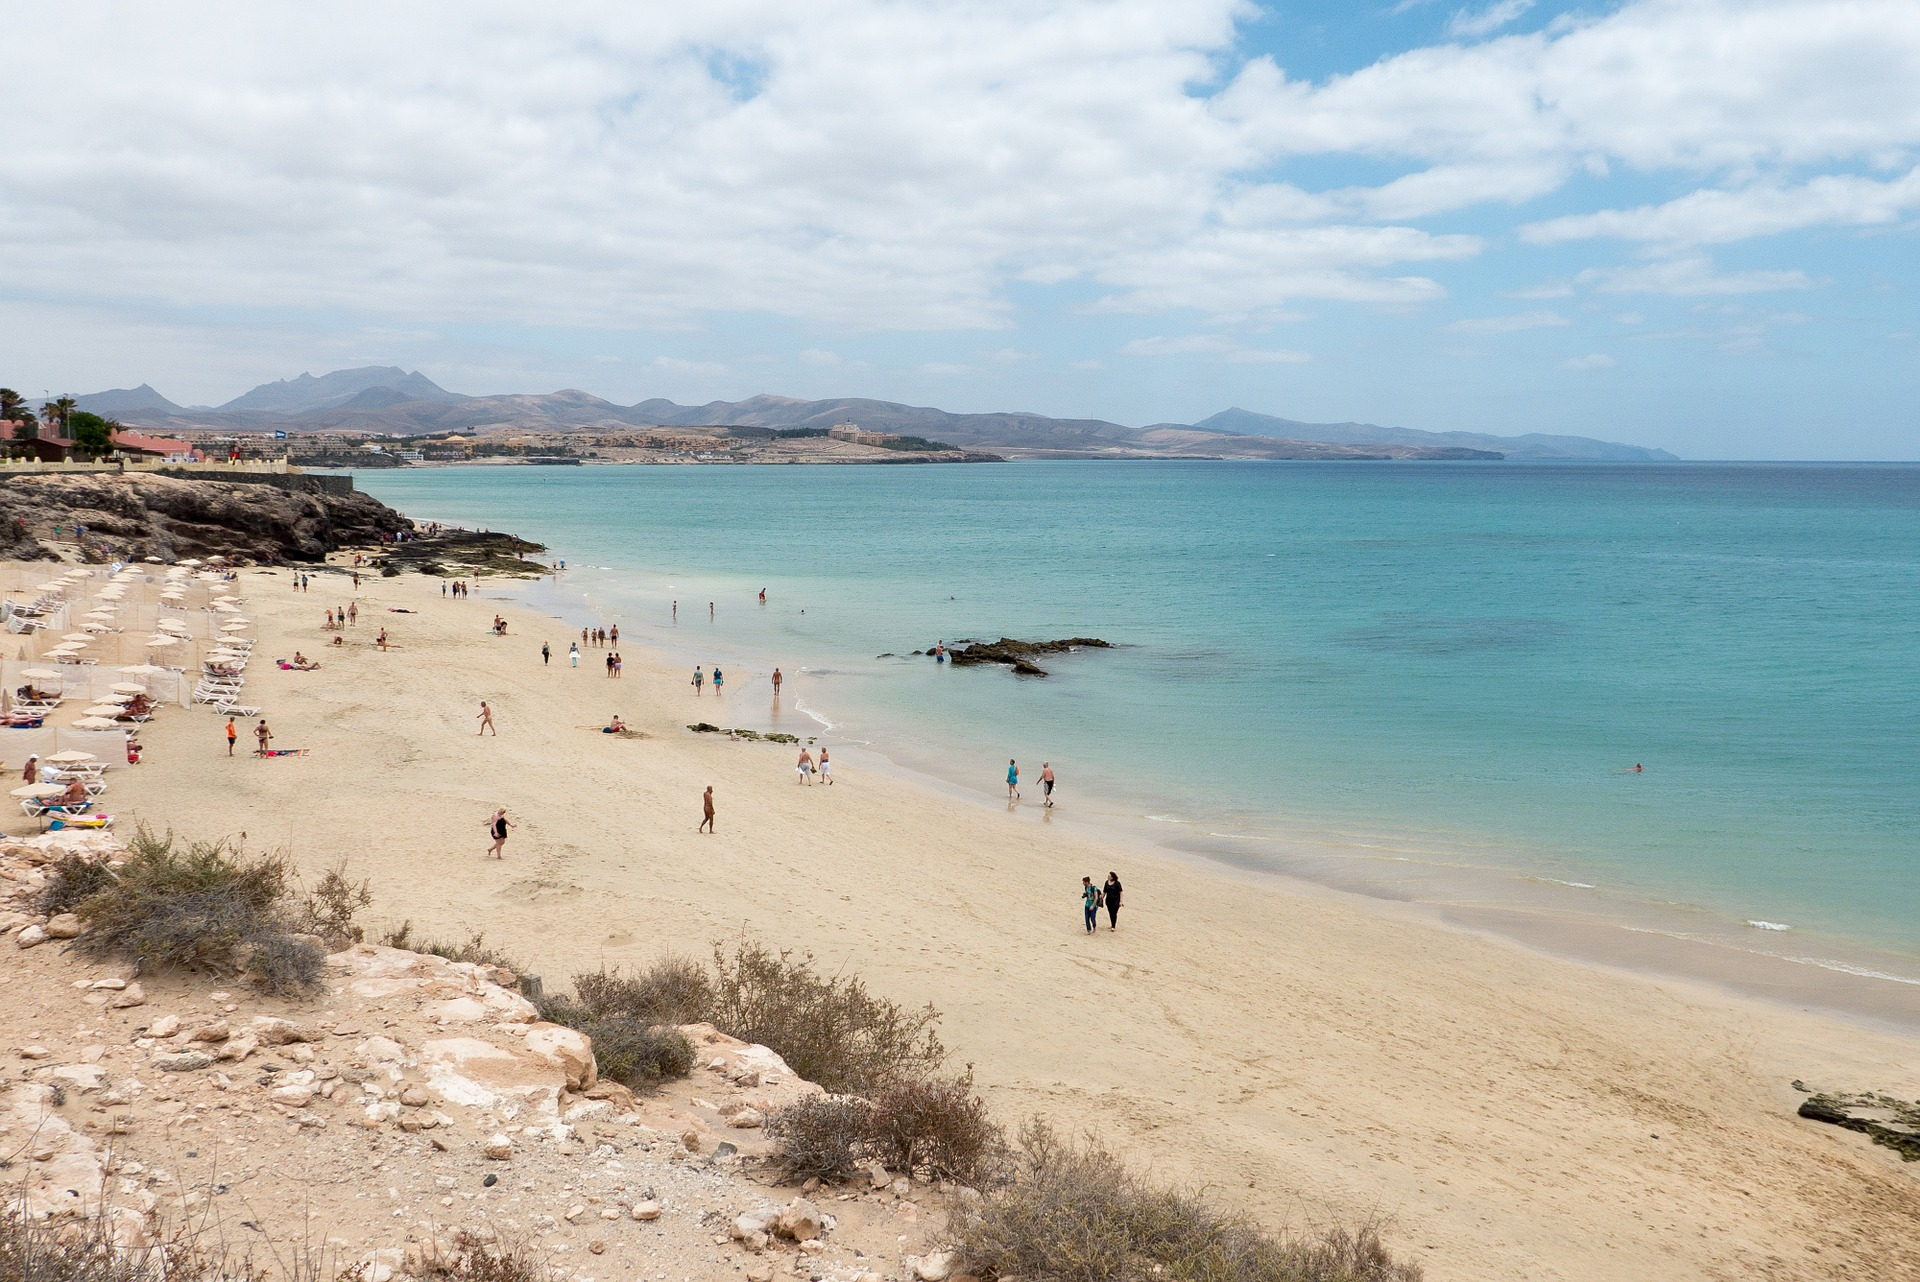 Playa Castillo eine Woche all Inclusive in Fuerteventura